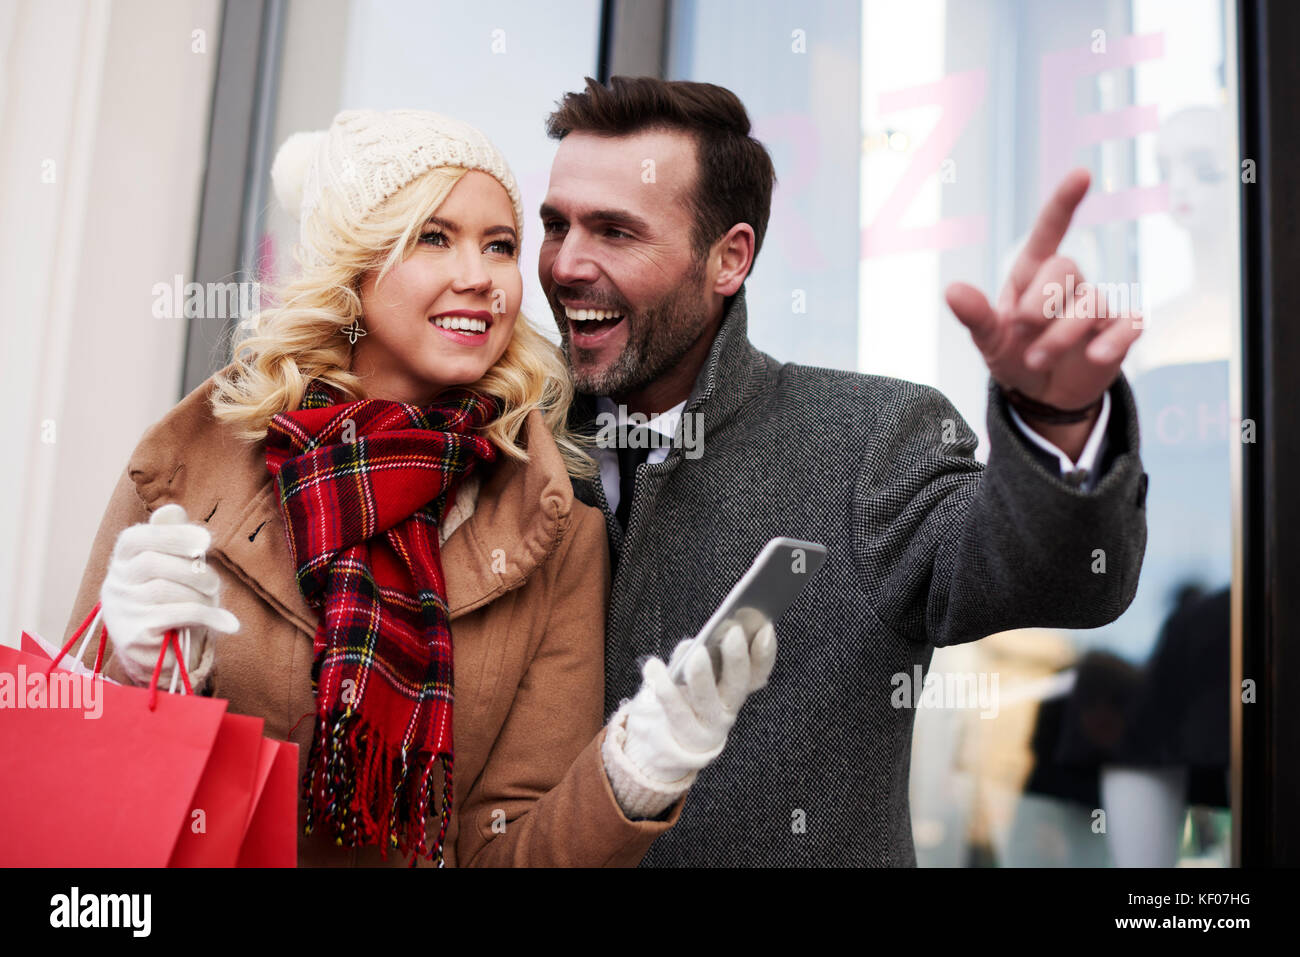 Waist up of adult couple in the city - Stock Image